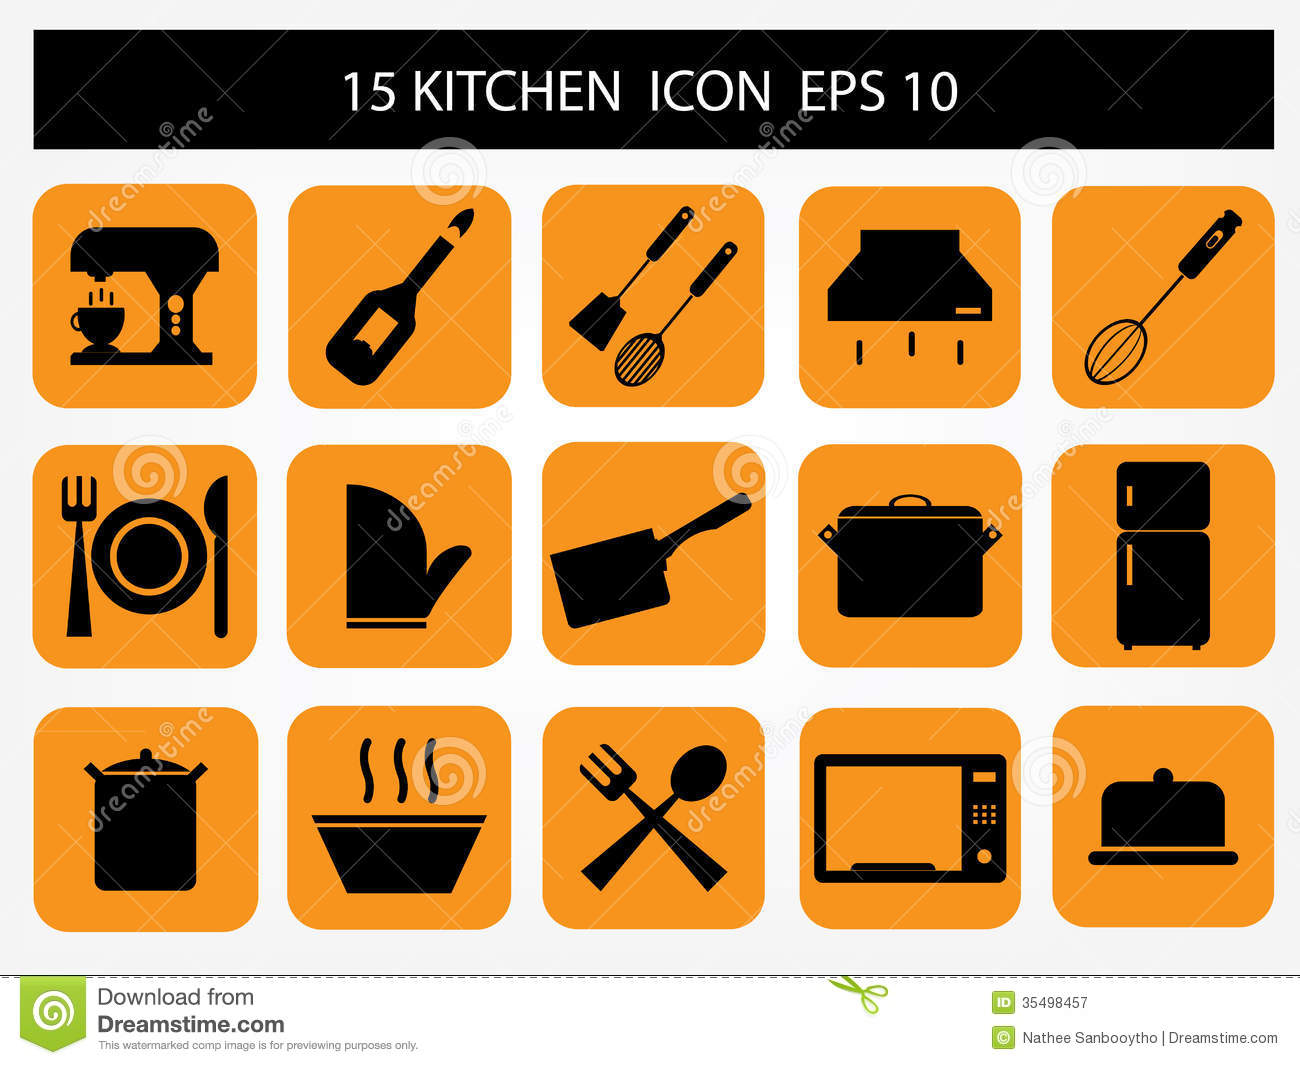 Exceptionnel Kitchen Icon. Food, Baking.